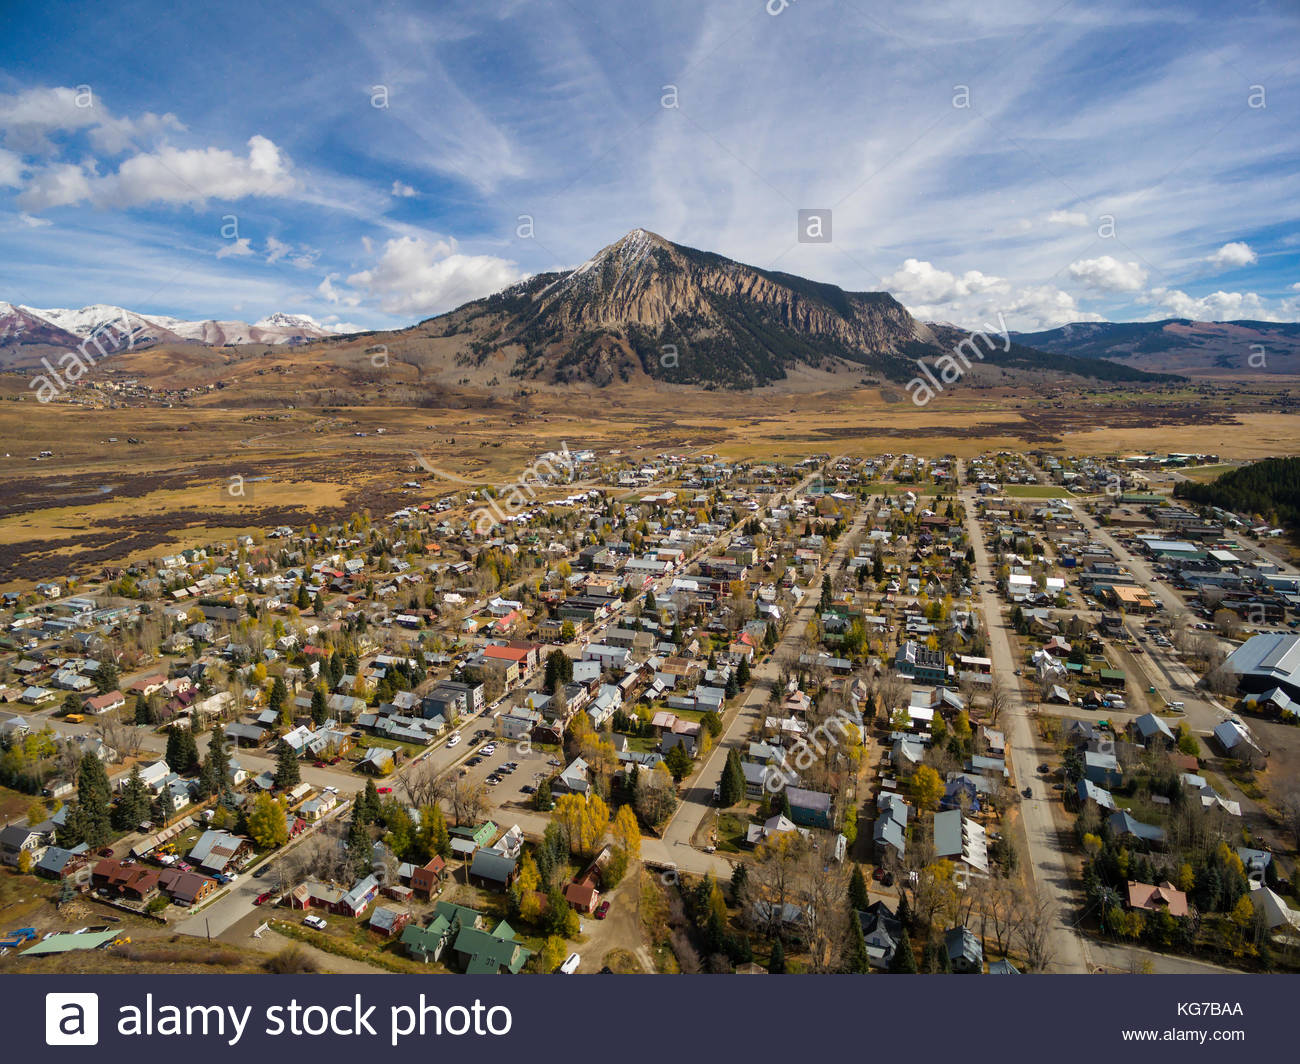 Aerial view of the town of Crested Butte, Colorado and Crested Butte Mountain on a beautiful fall day. - Stock Image